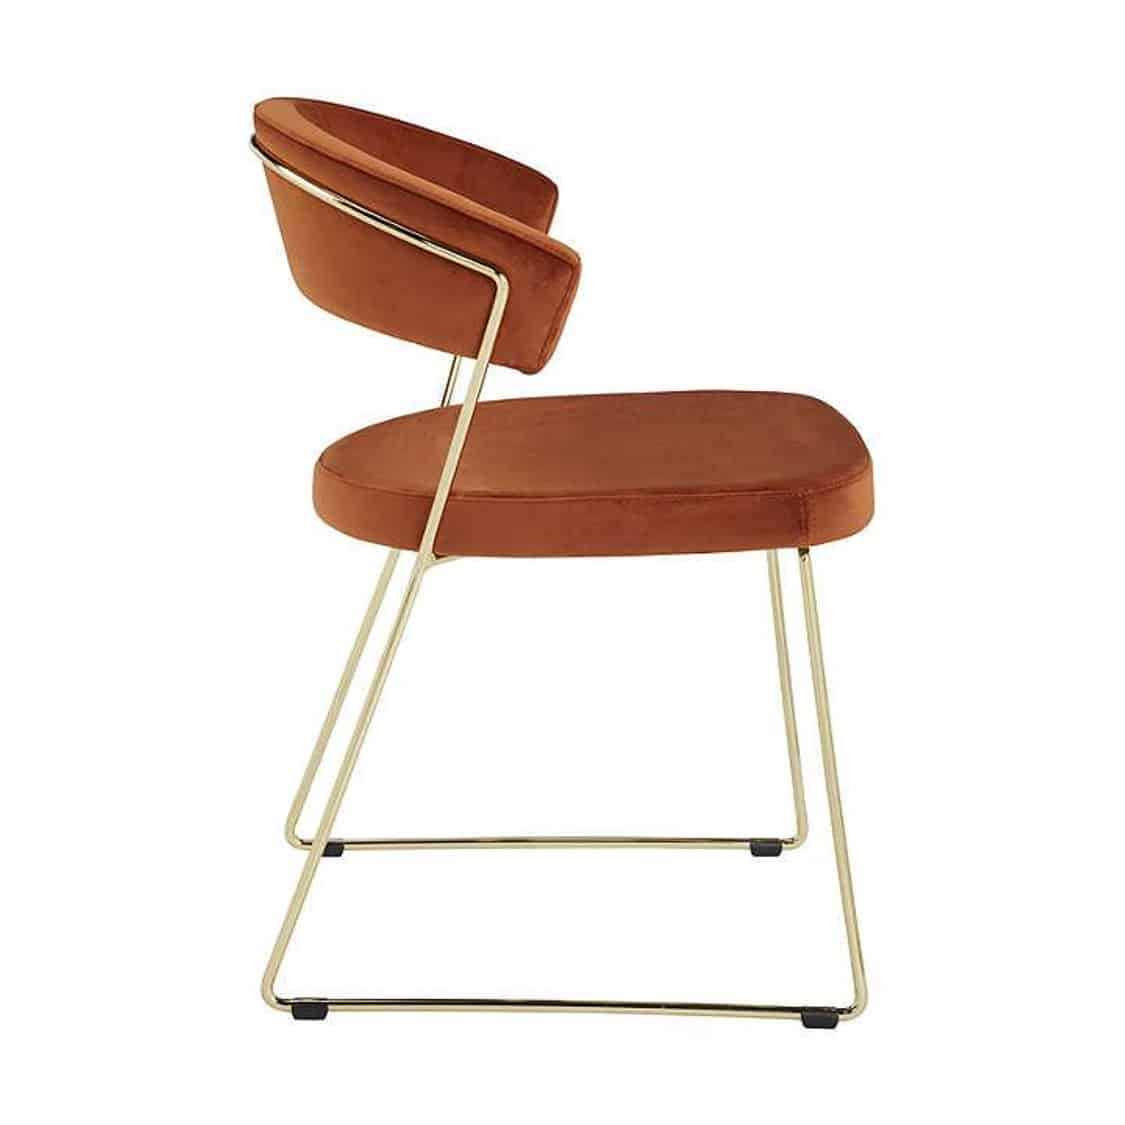 New York Armchair Curved Back Gold Sled Base Calligaris at DeFrae Contract Furniture Velvet Rust